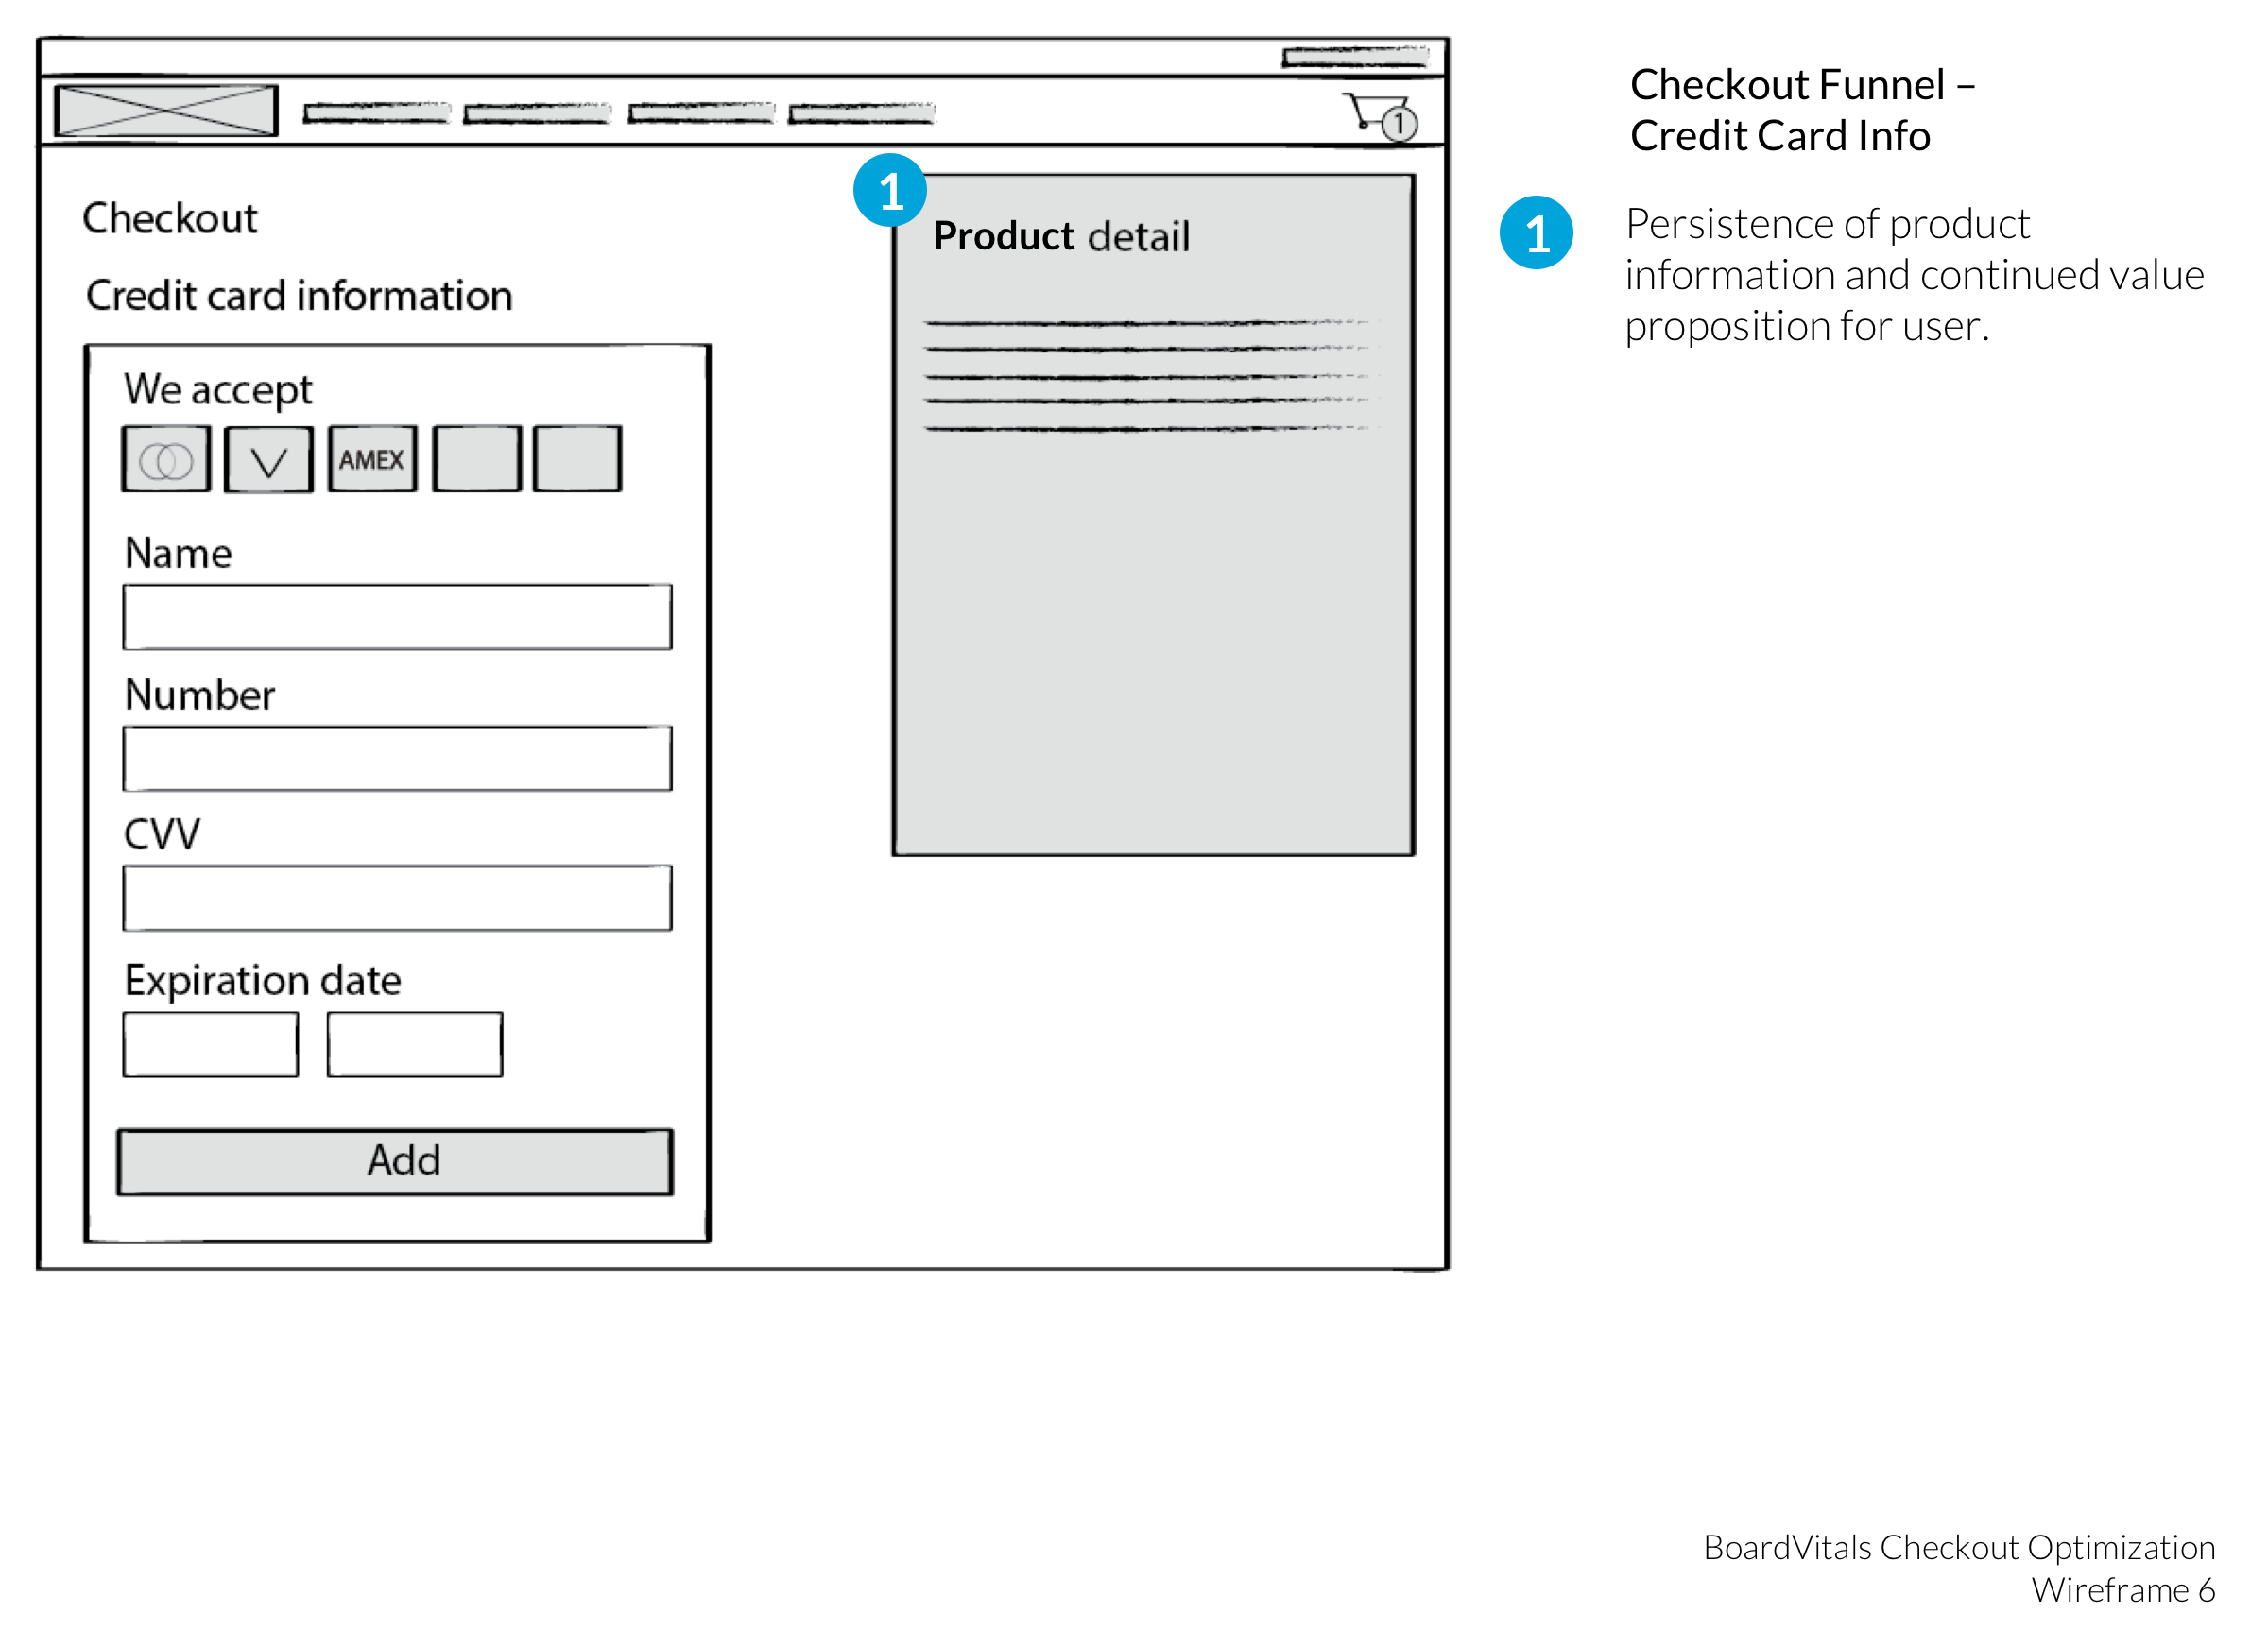 BV checkout optimization_wireframe_flows Copy 5.png